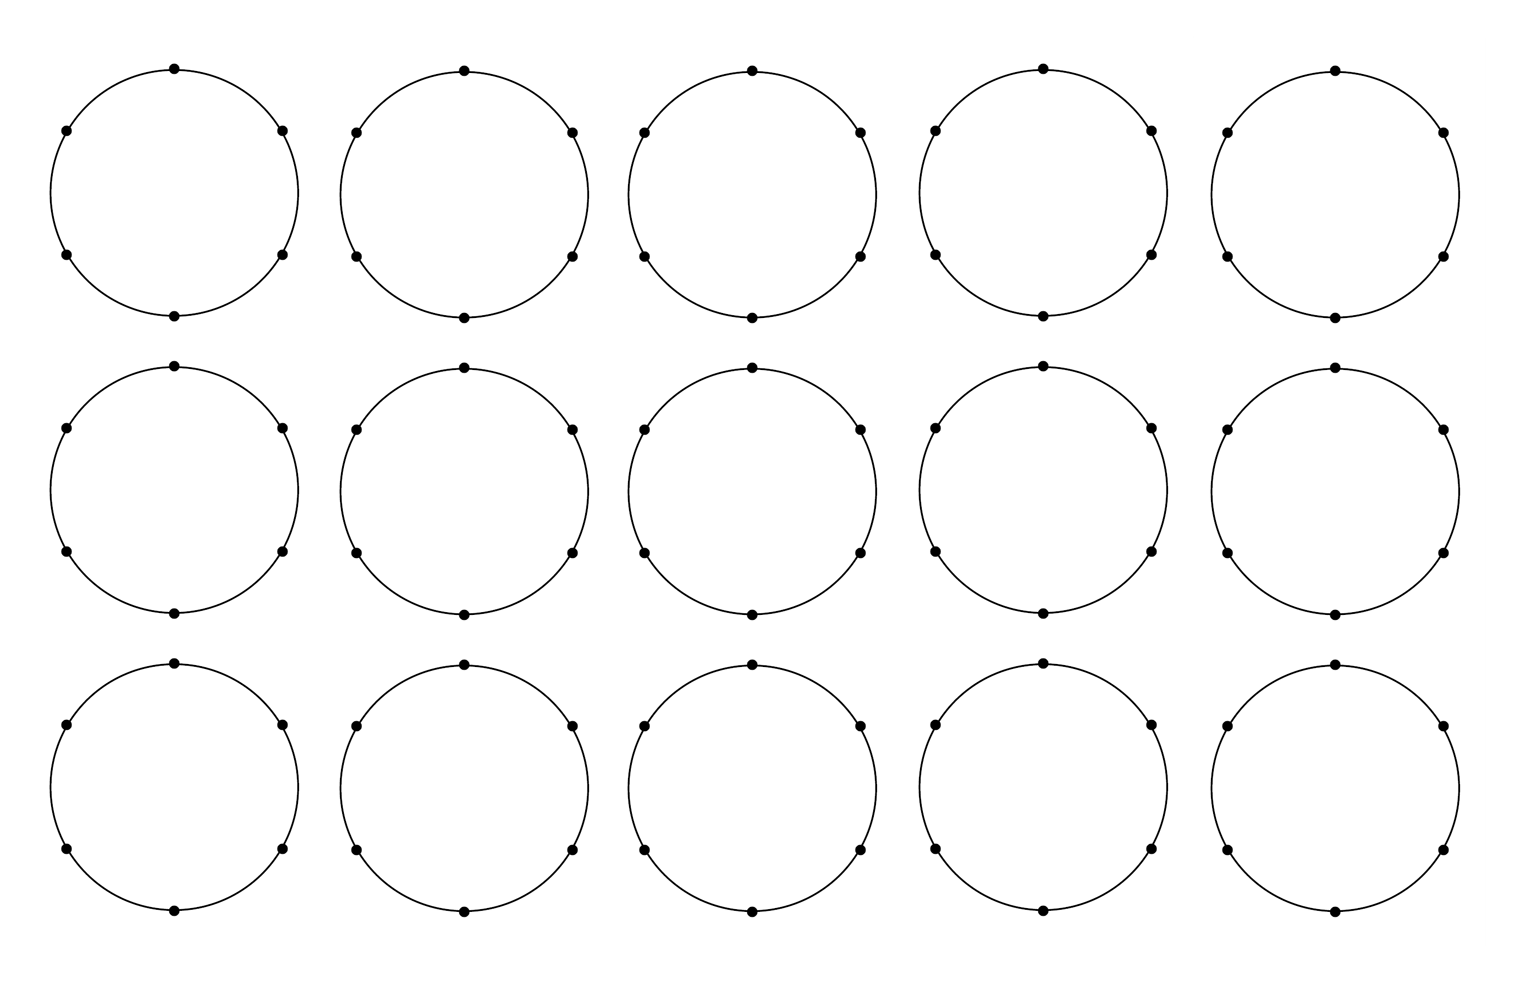 MEDIAN Don Steward mathematics teaching: joining 6 dots